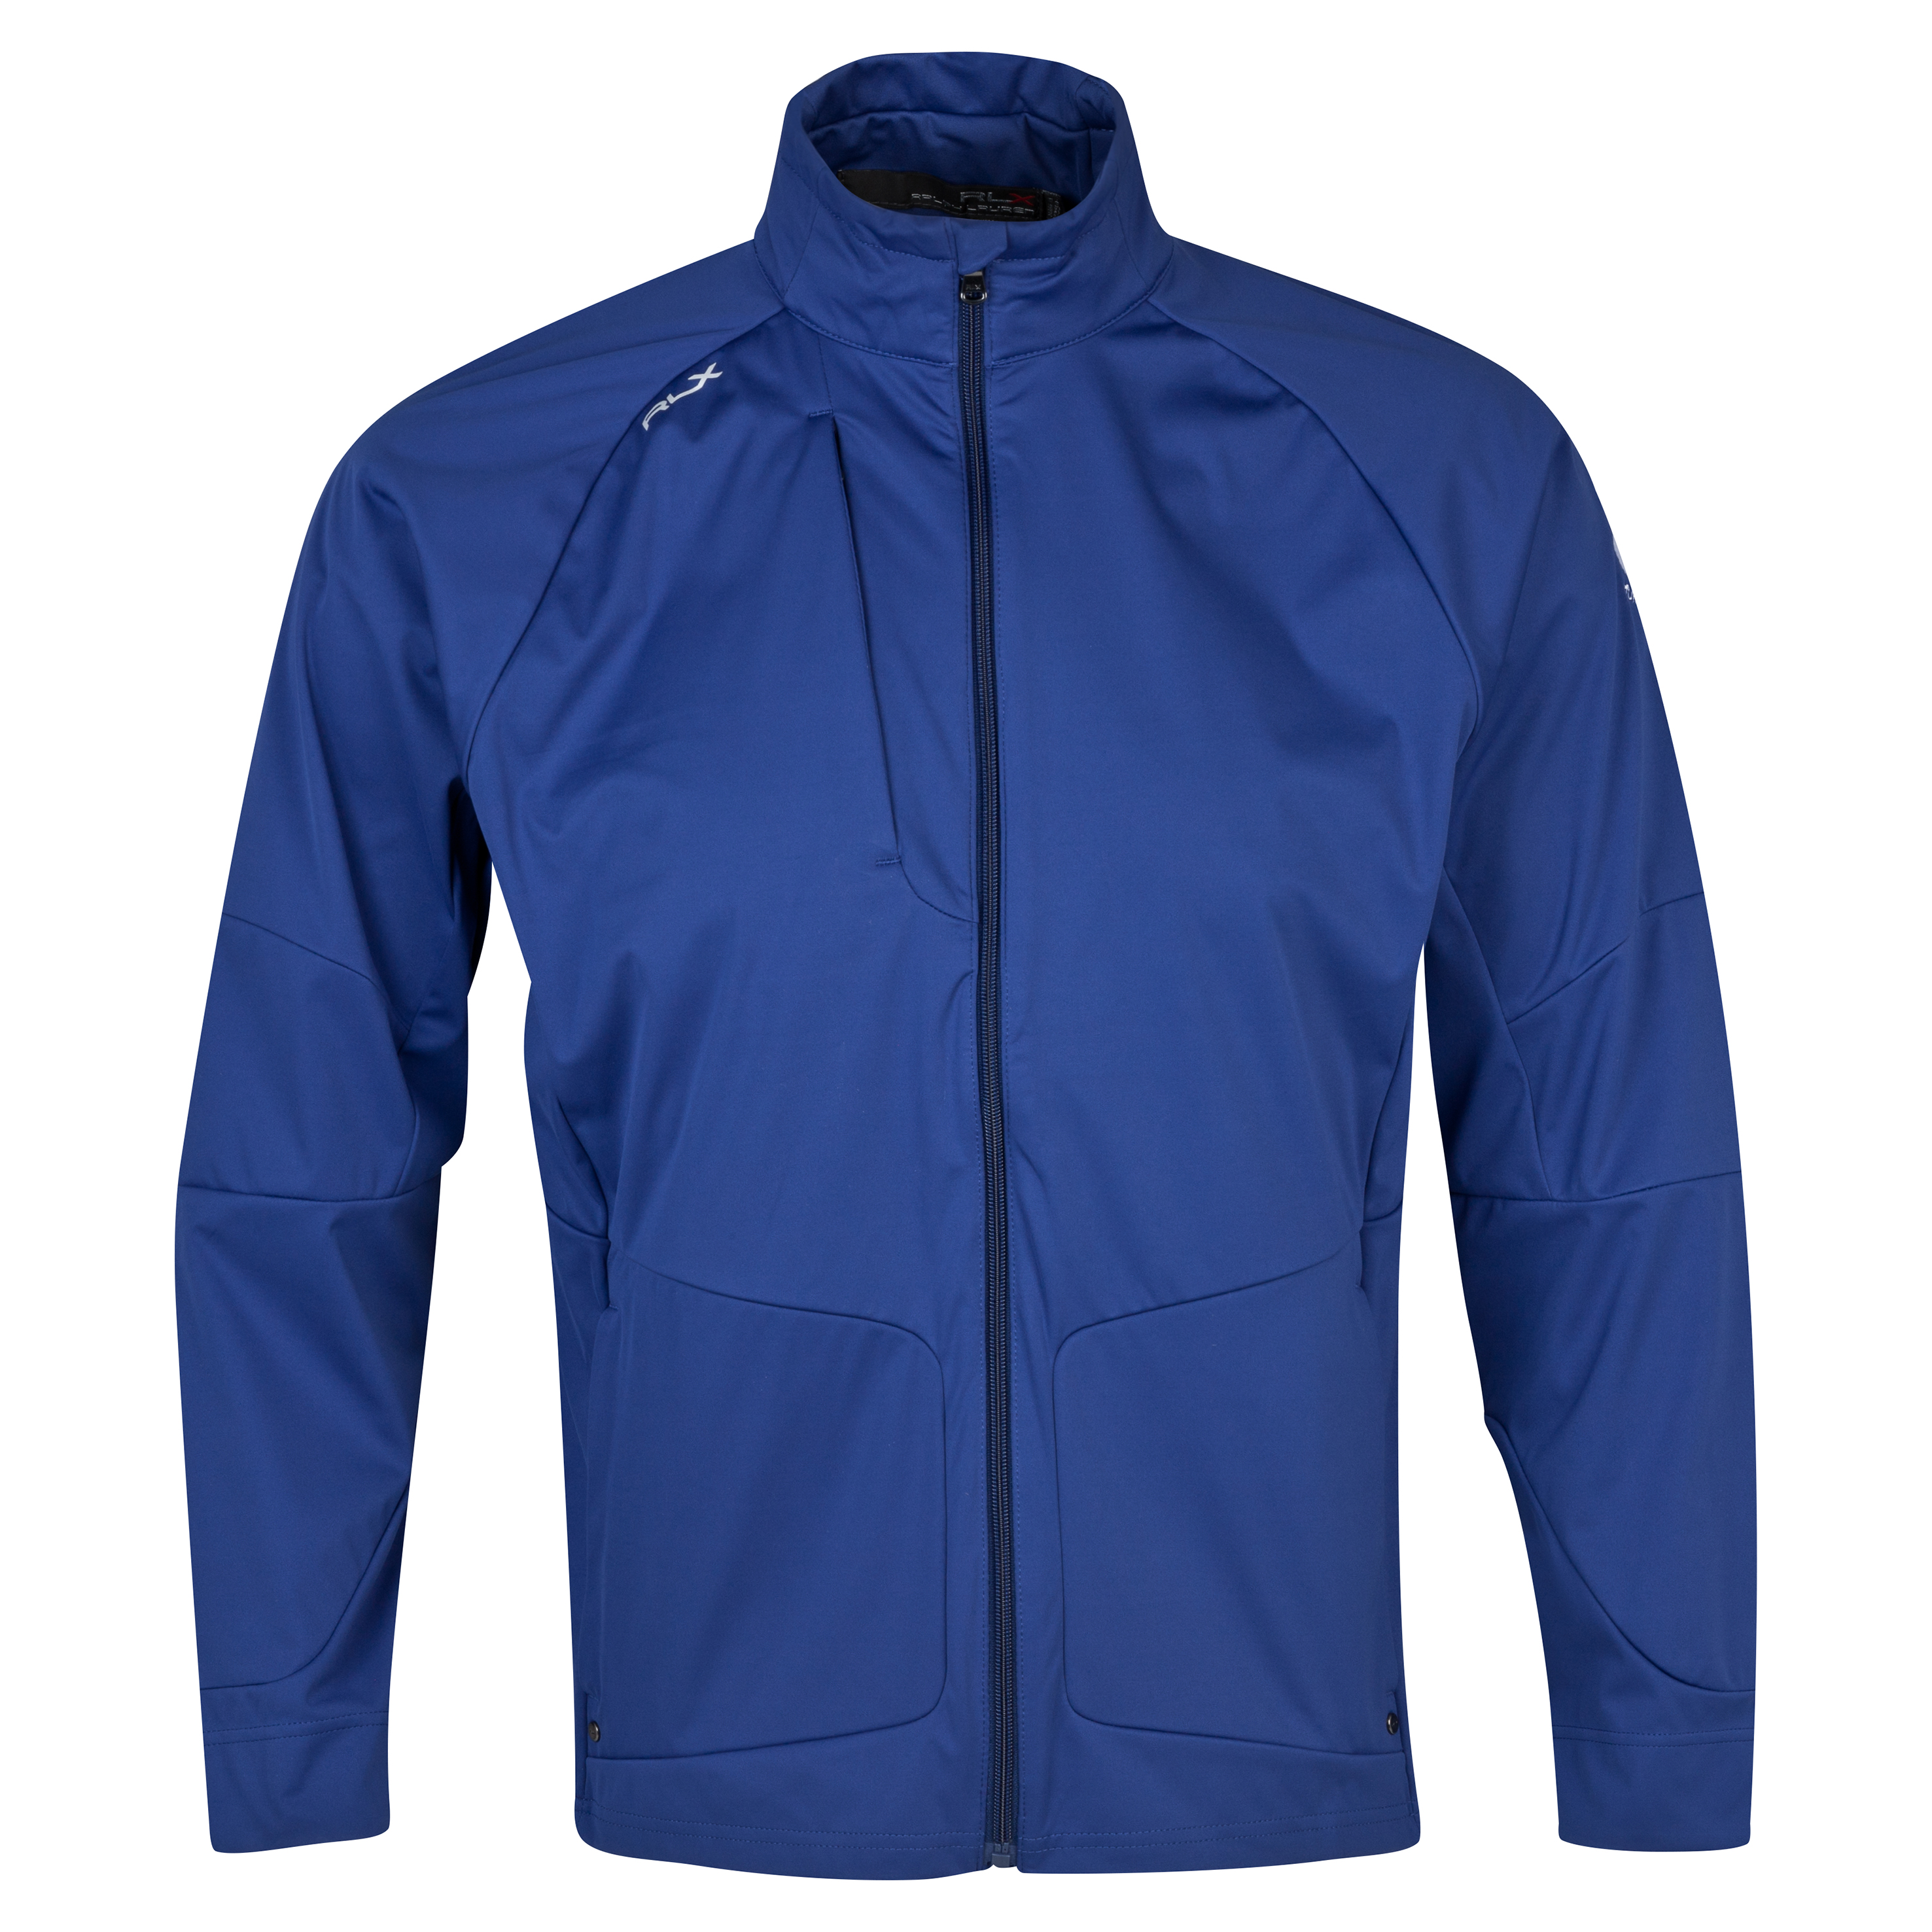 Open Golf The Open Championship 2013 Muirfield Ralph Lauren RLX Full Zip Drive Jacket Dk Blue